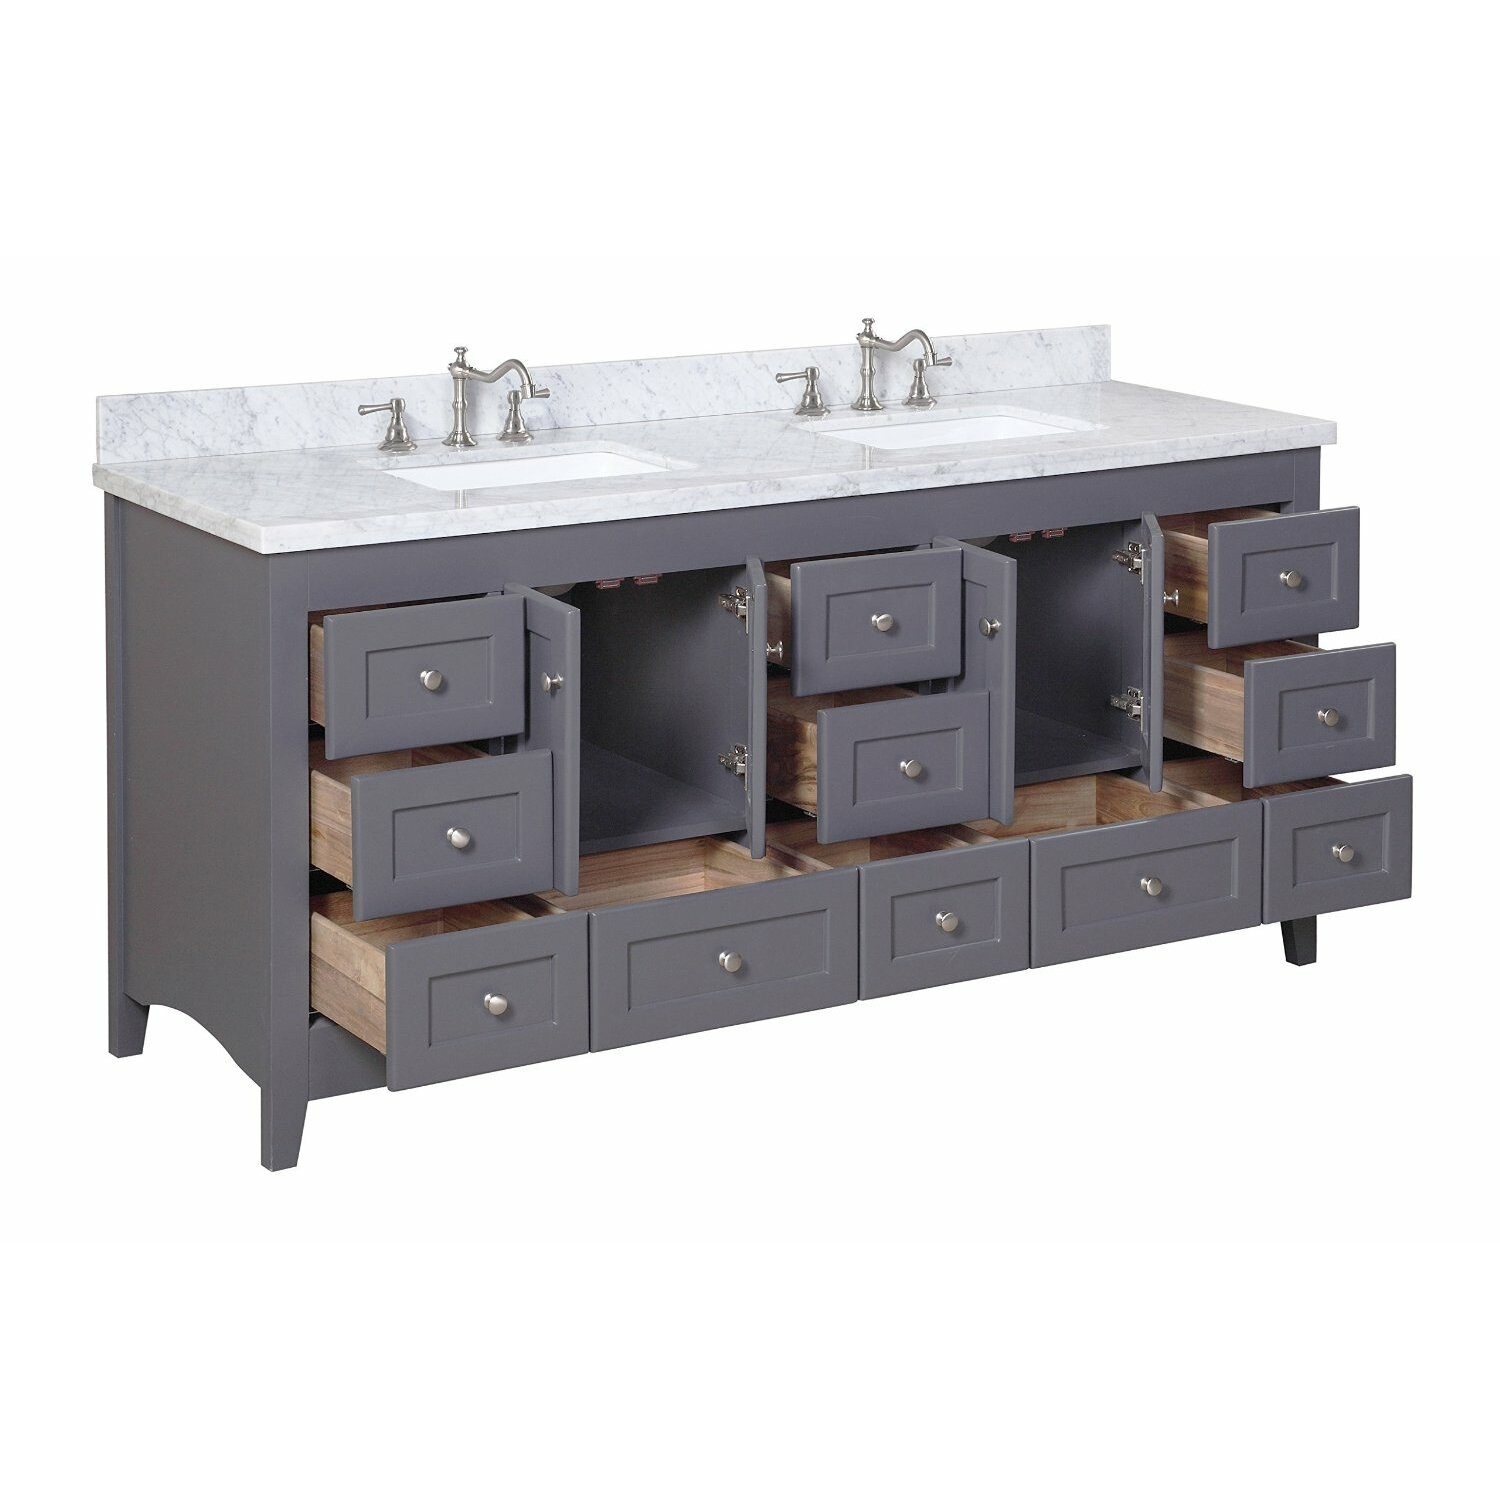 Kbc abbey 72 double bathroom vanity set reviews wayfair for Bathroom 72 double vanity